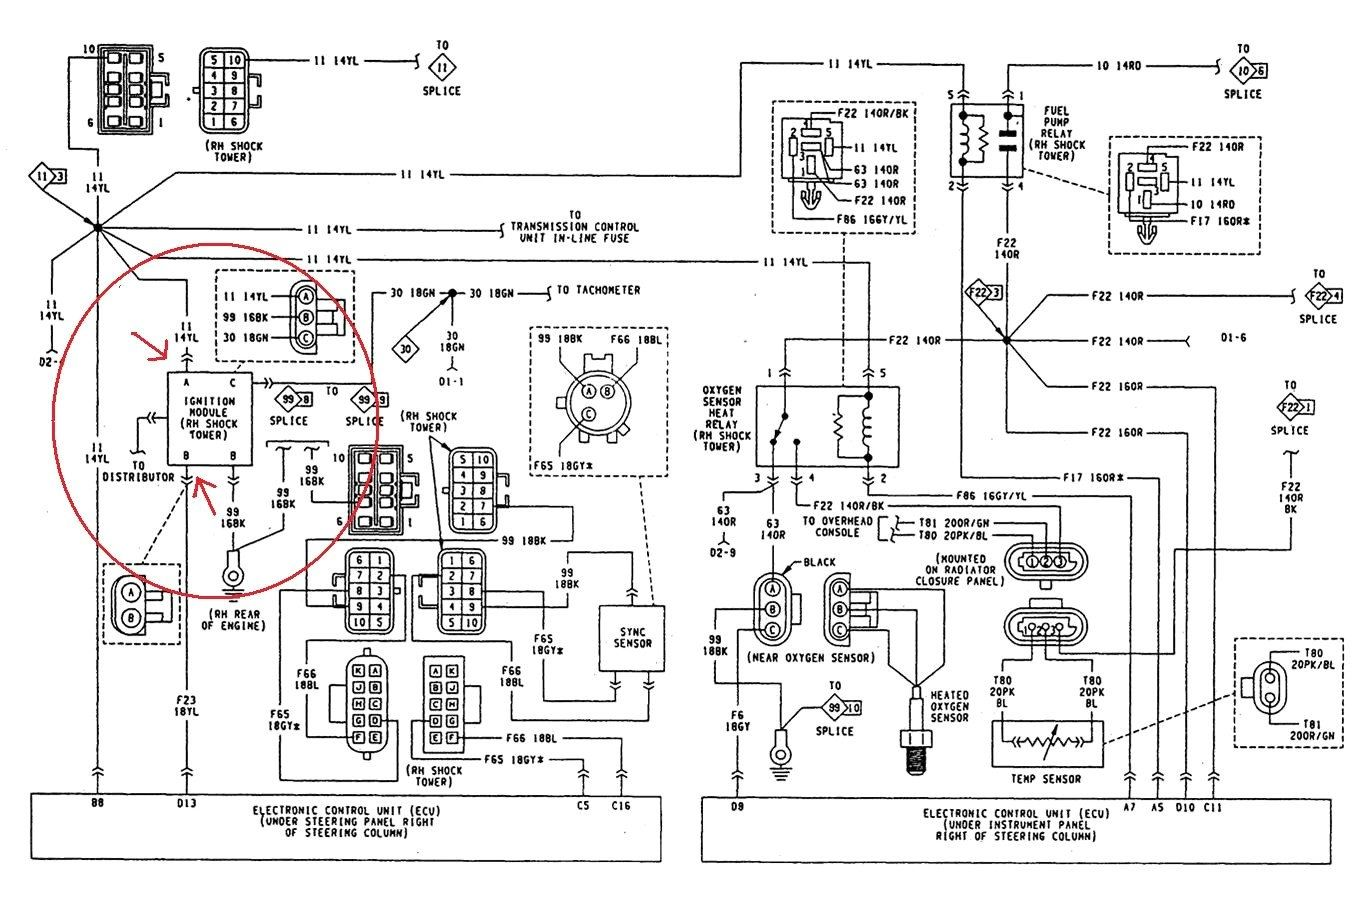 medium resolution of 1990 wrangler wiring diagram wiring diagram insider yj tachometer wiring diagram